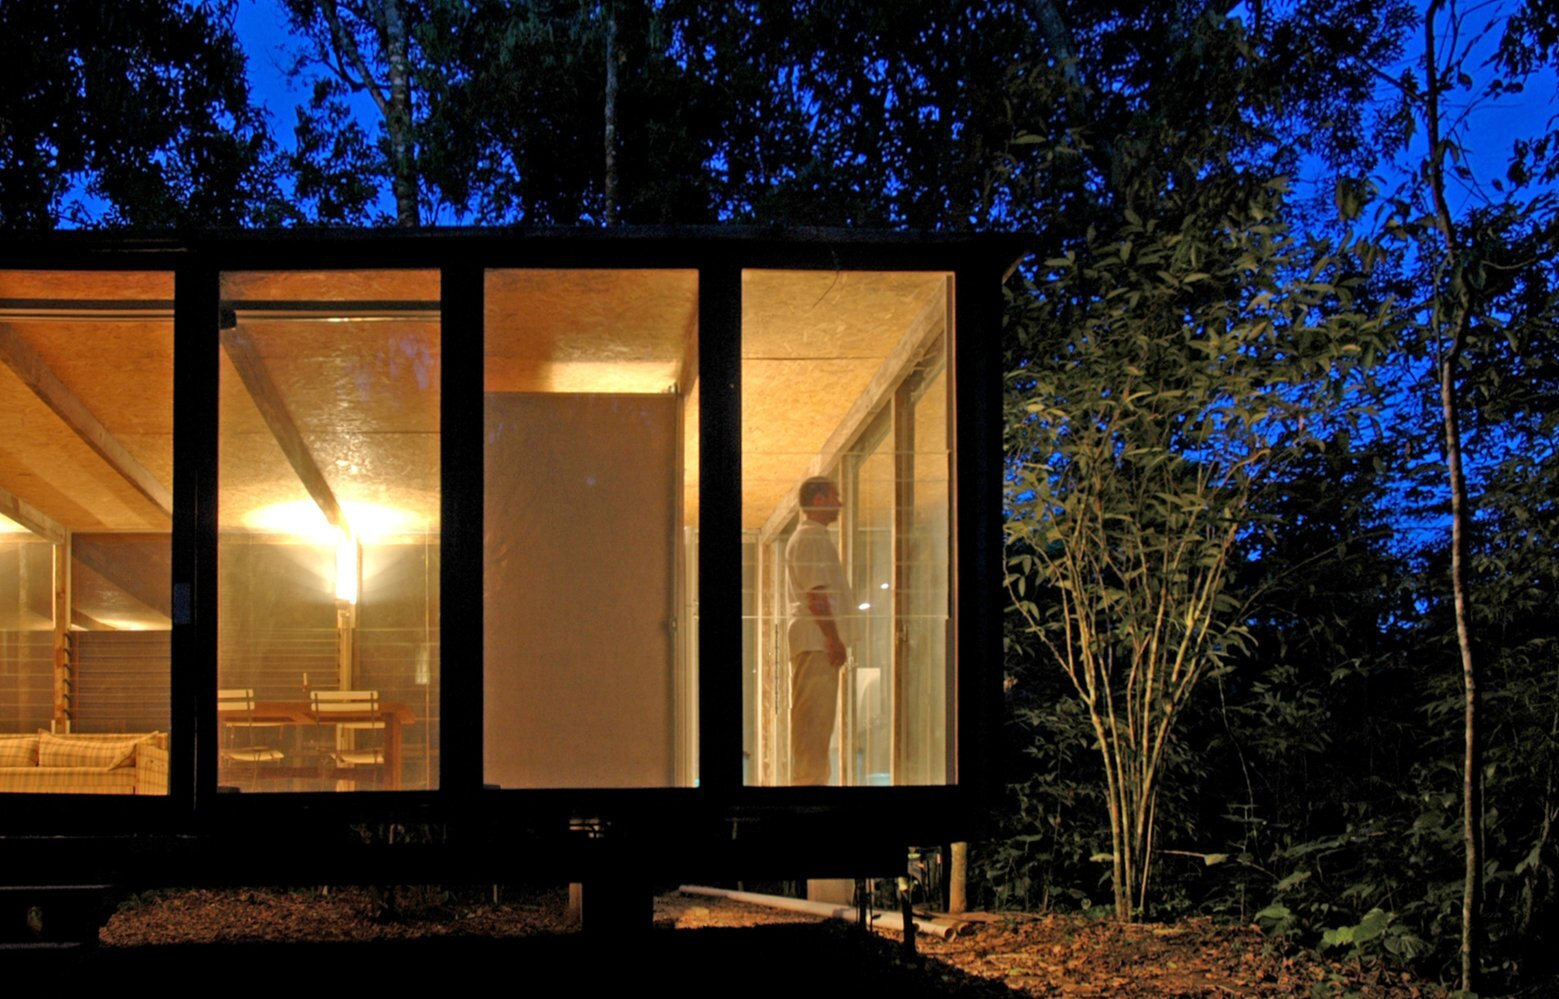 Casa na Mata - NITSCHE ARQUITETOS - Brazil - Small House - Exterior Night - Humble Homes